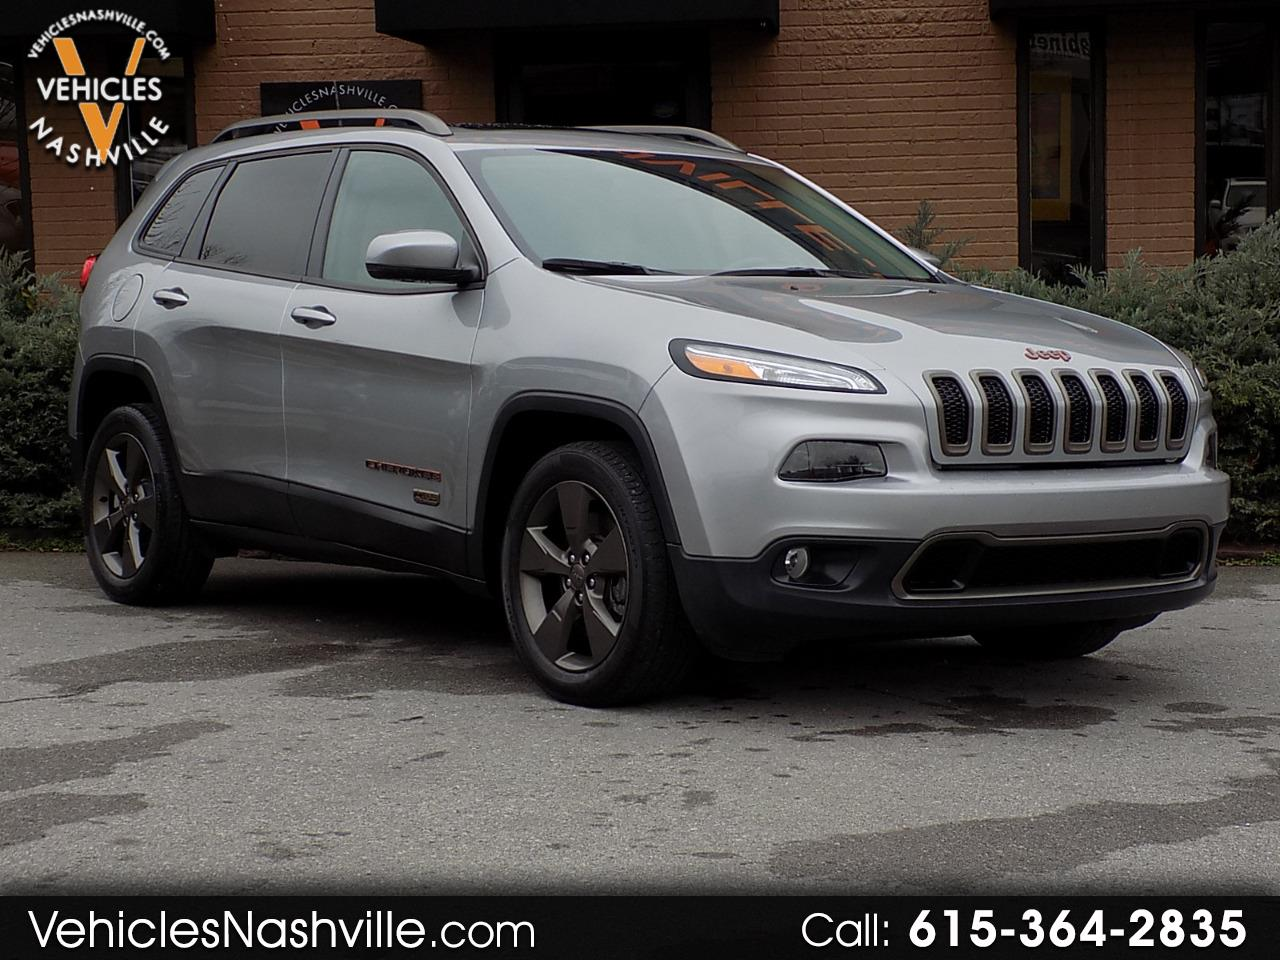 2016 Jeep Cherokee FWD 4dr 75th Anniversary